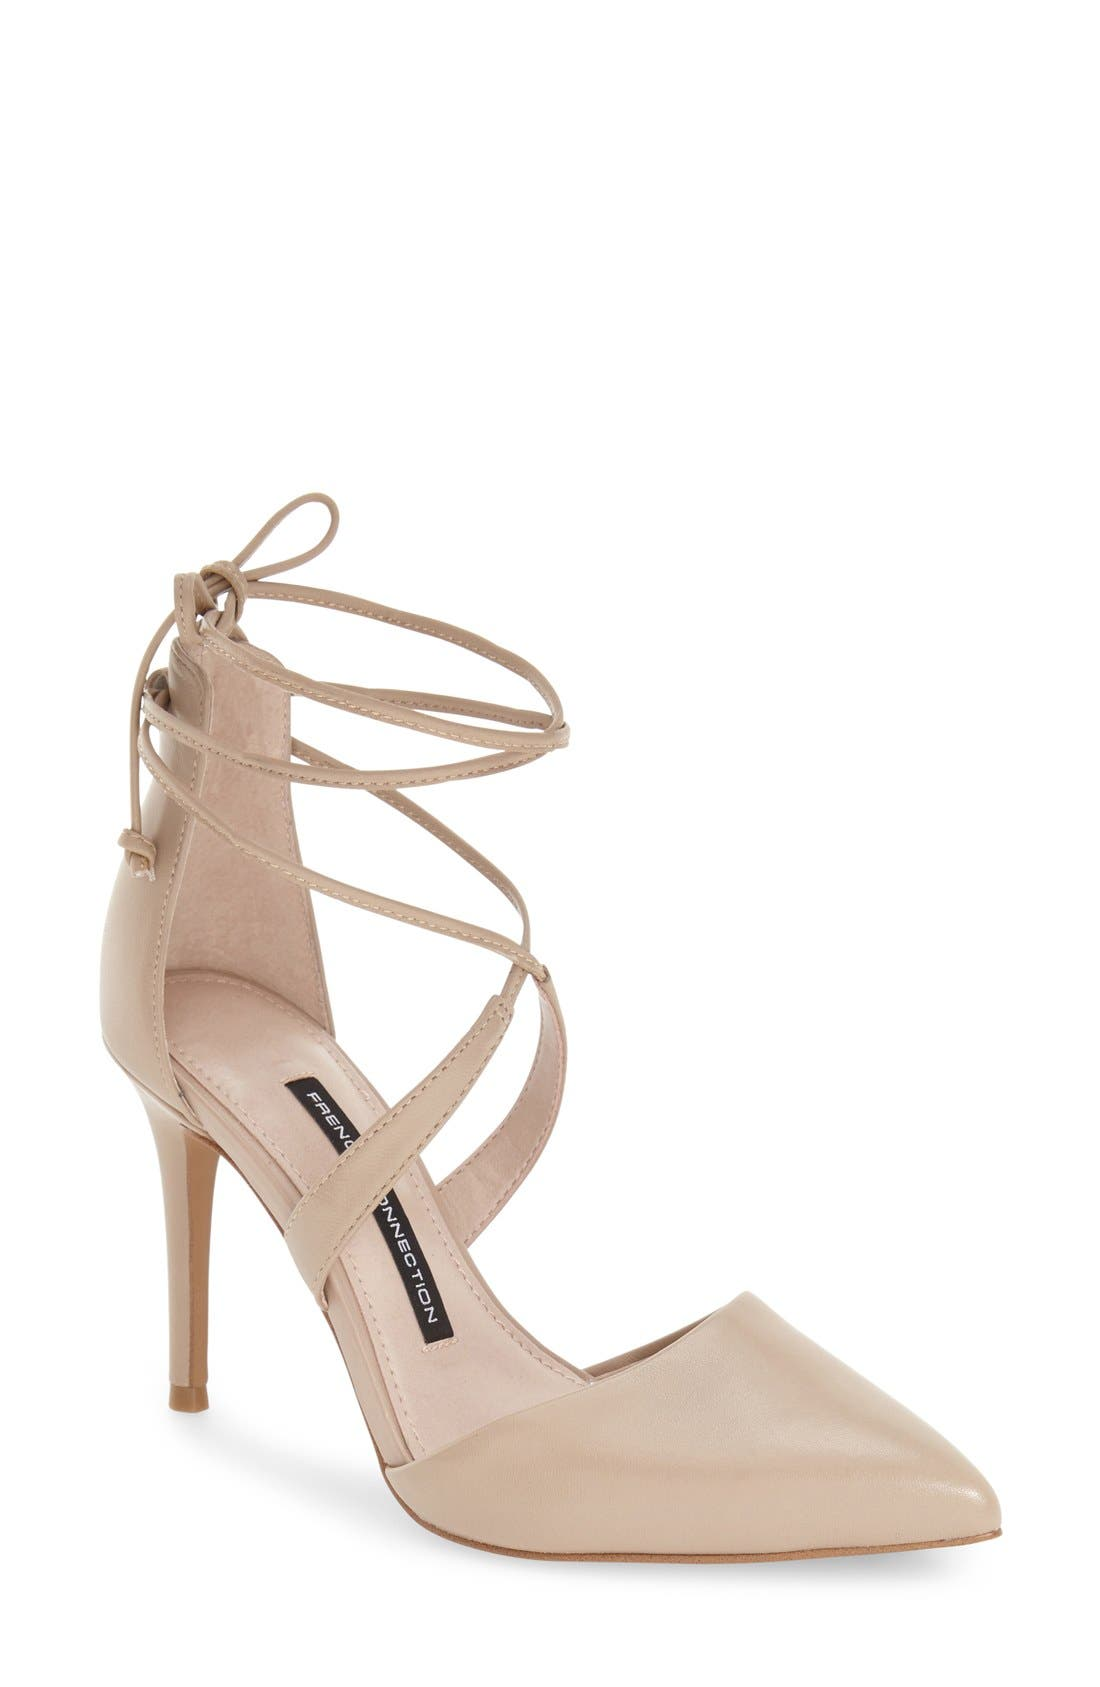 'Elise' d'Orsay Wraparound Lace Pump,                         Main,                         color, Almost Nude Leather